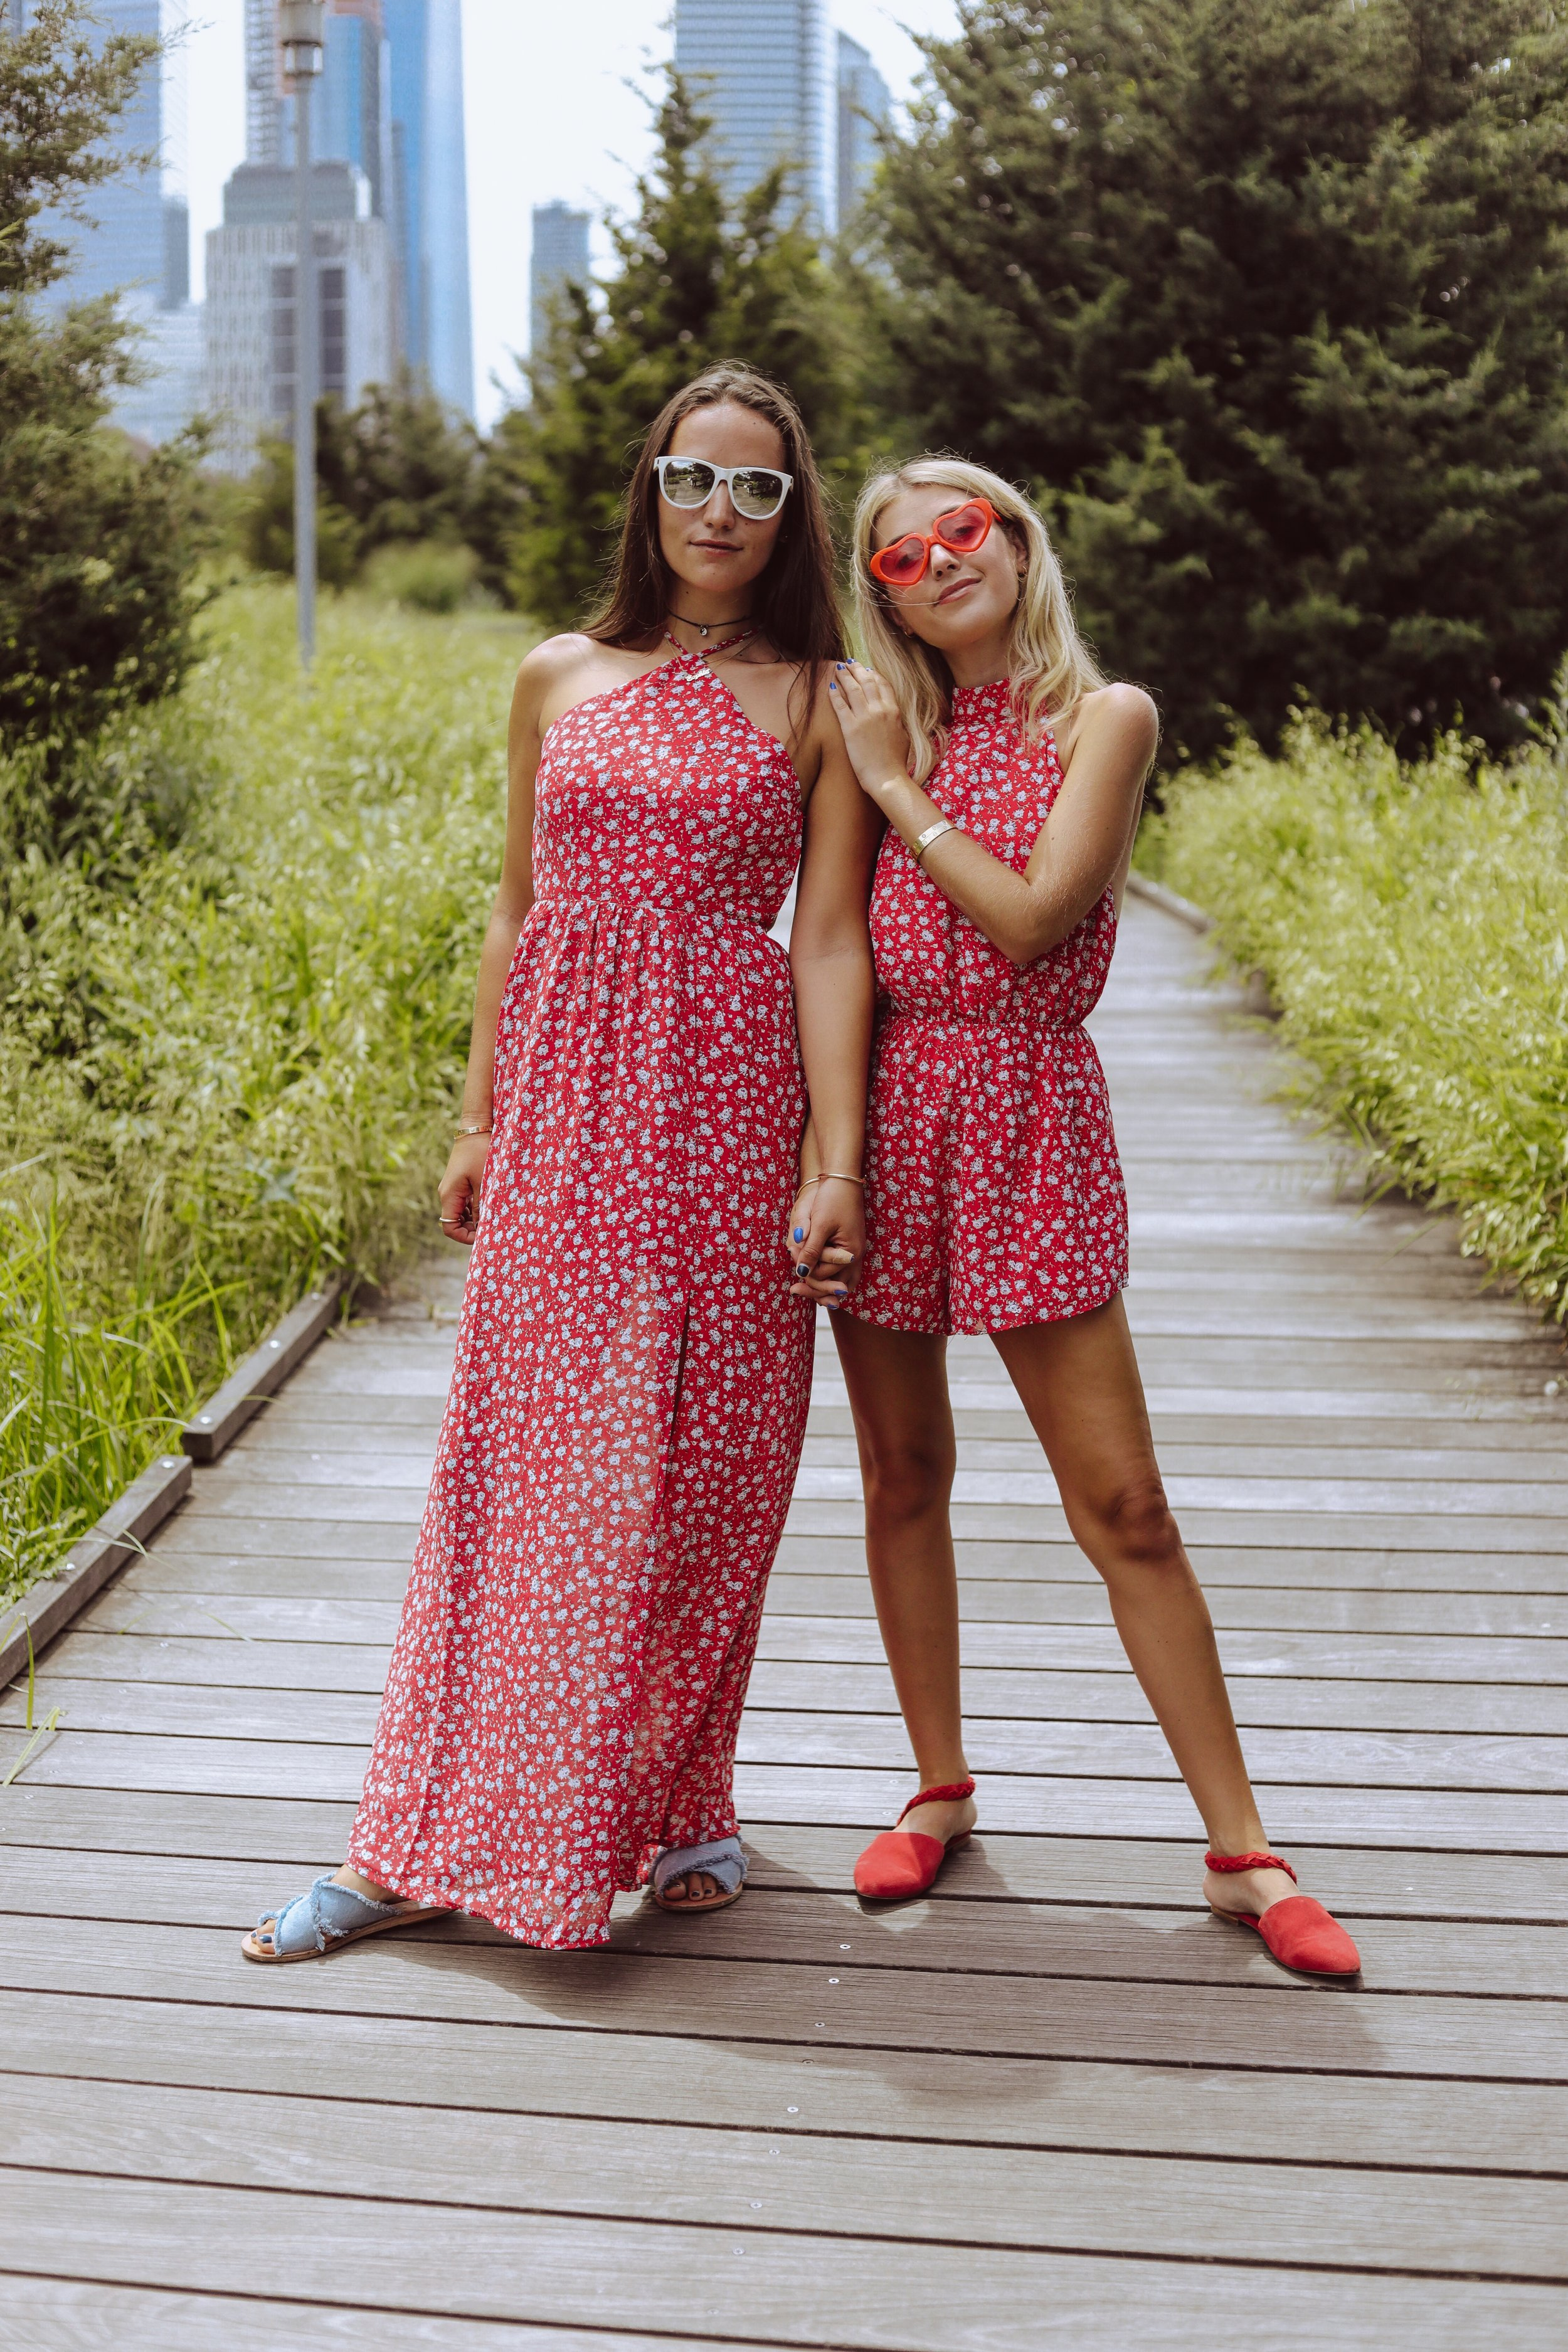 SOPHIE & CHARLOTTE BICKLEY YIN 2MY YANG NYC SISTER FASHION BLOGGERS TOBI FLORAL POST